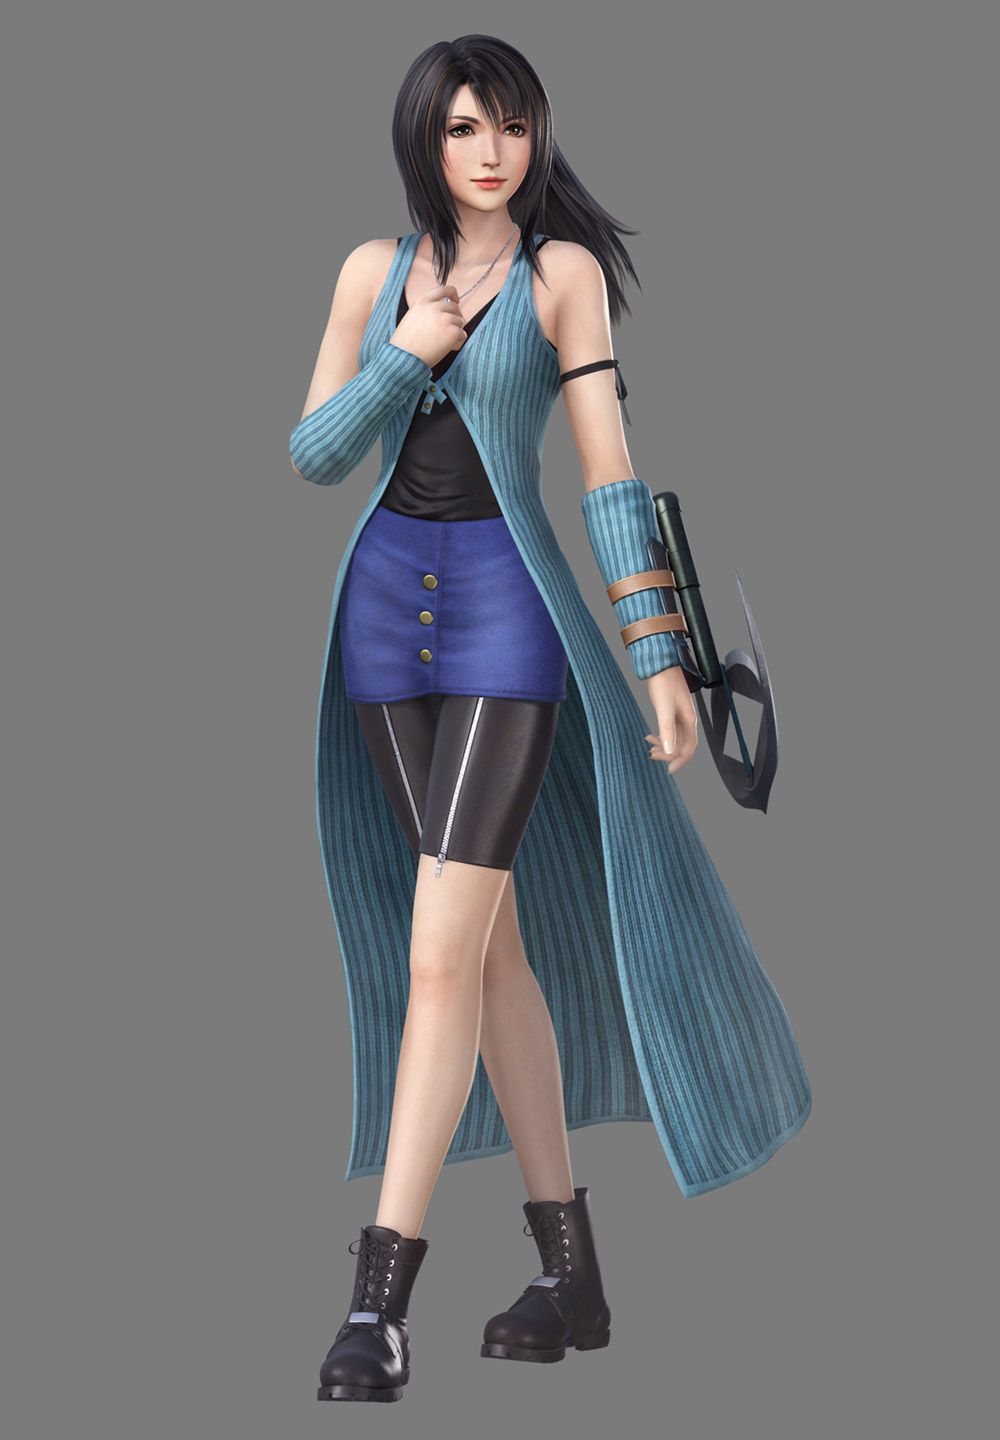 Rinoa Timber Resistance I Outfit From Dissidia Final